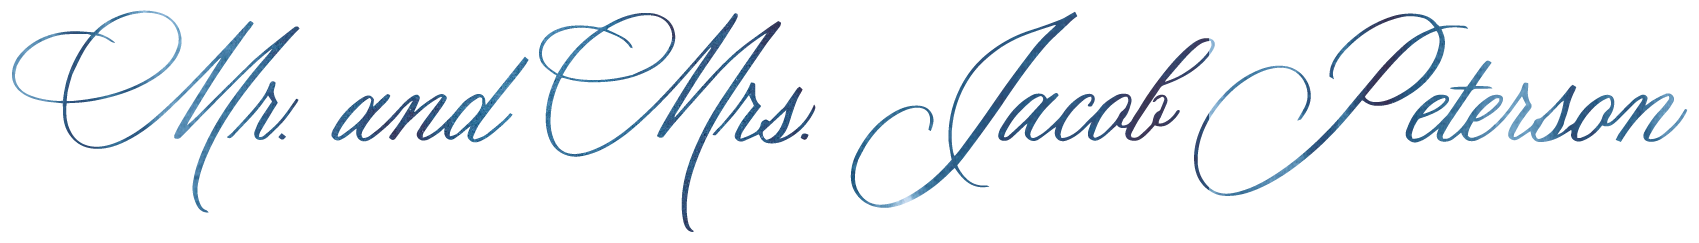 Calligraphy Examples-01-04.png